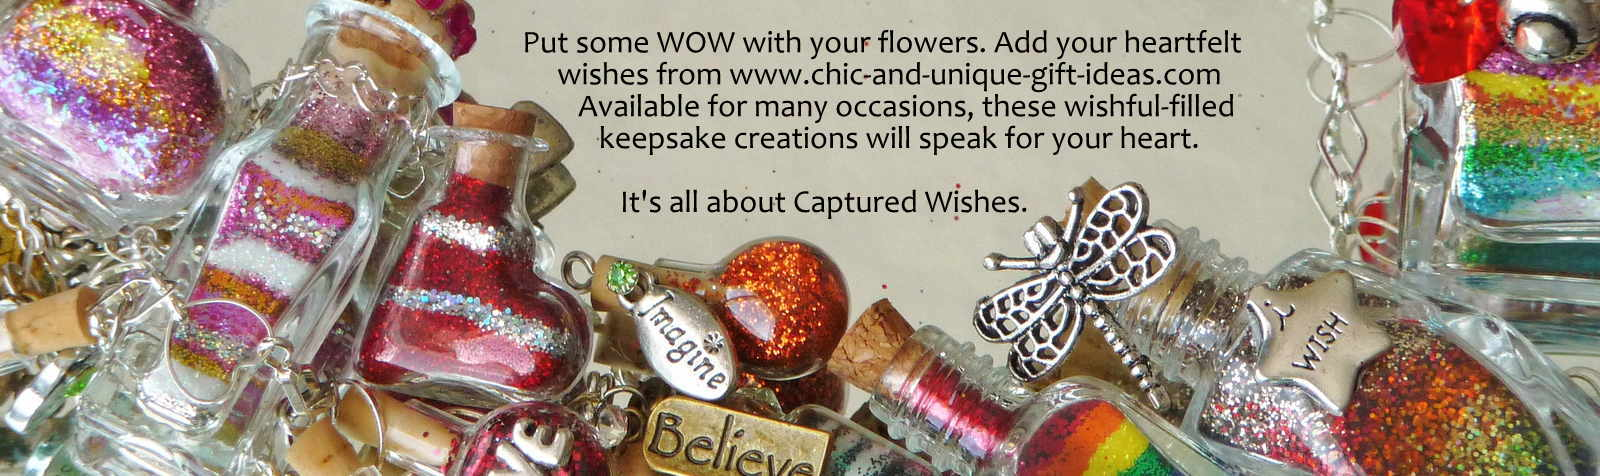 Add some wow with your flowers - click to www.chic-and-unique-gift-ideas.com CAPTURED WISHES!